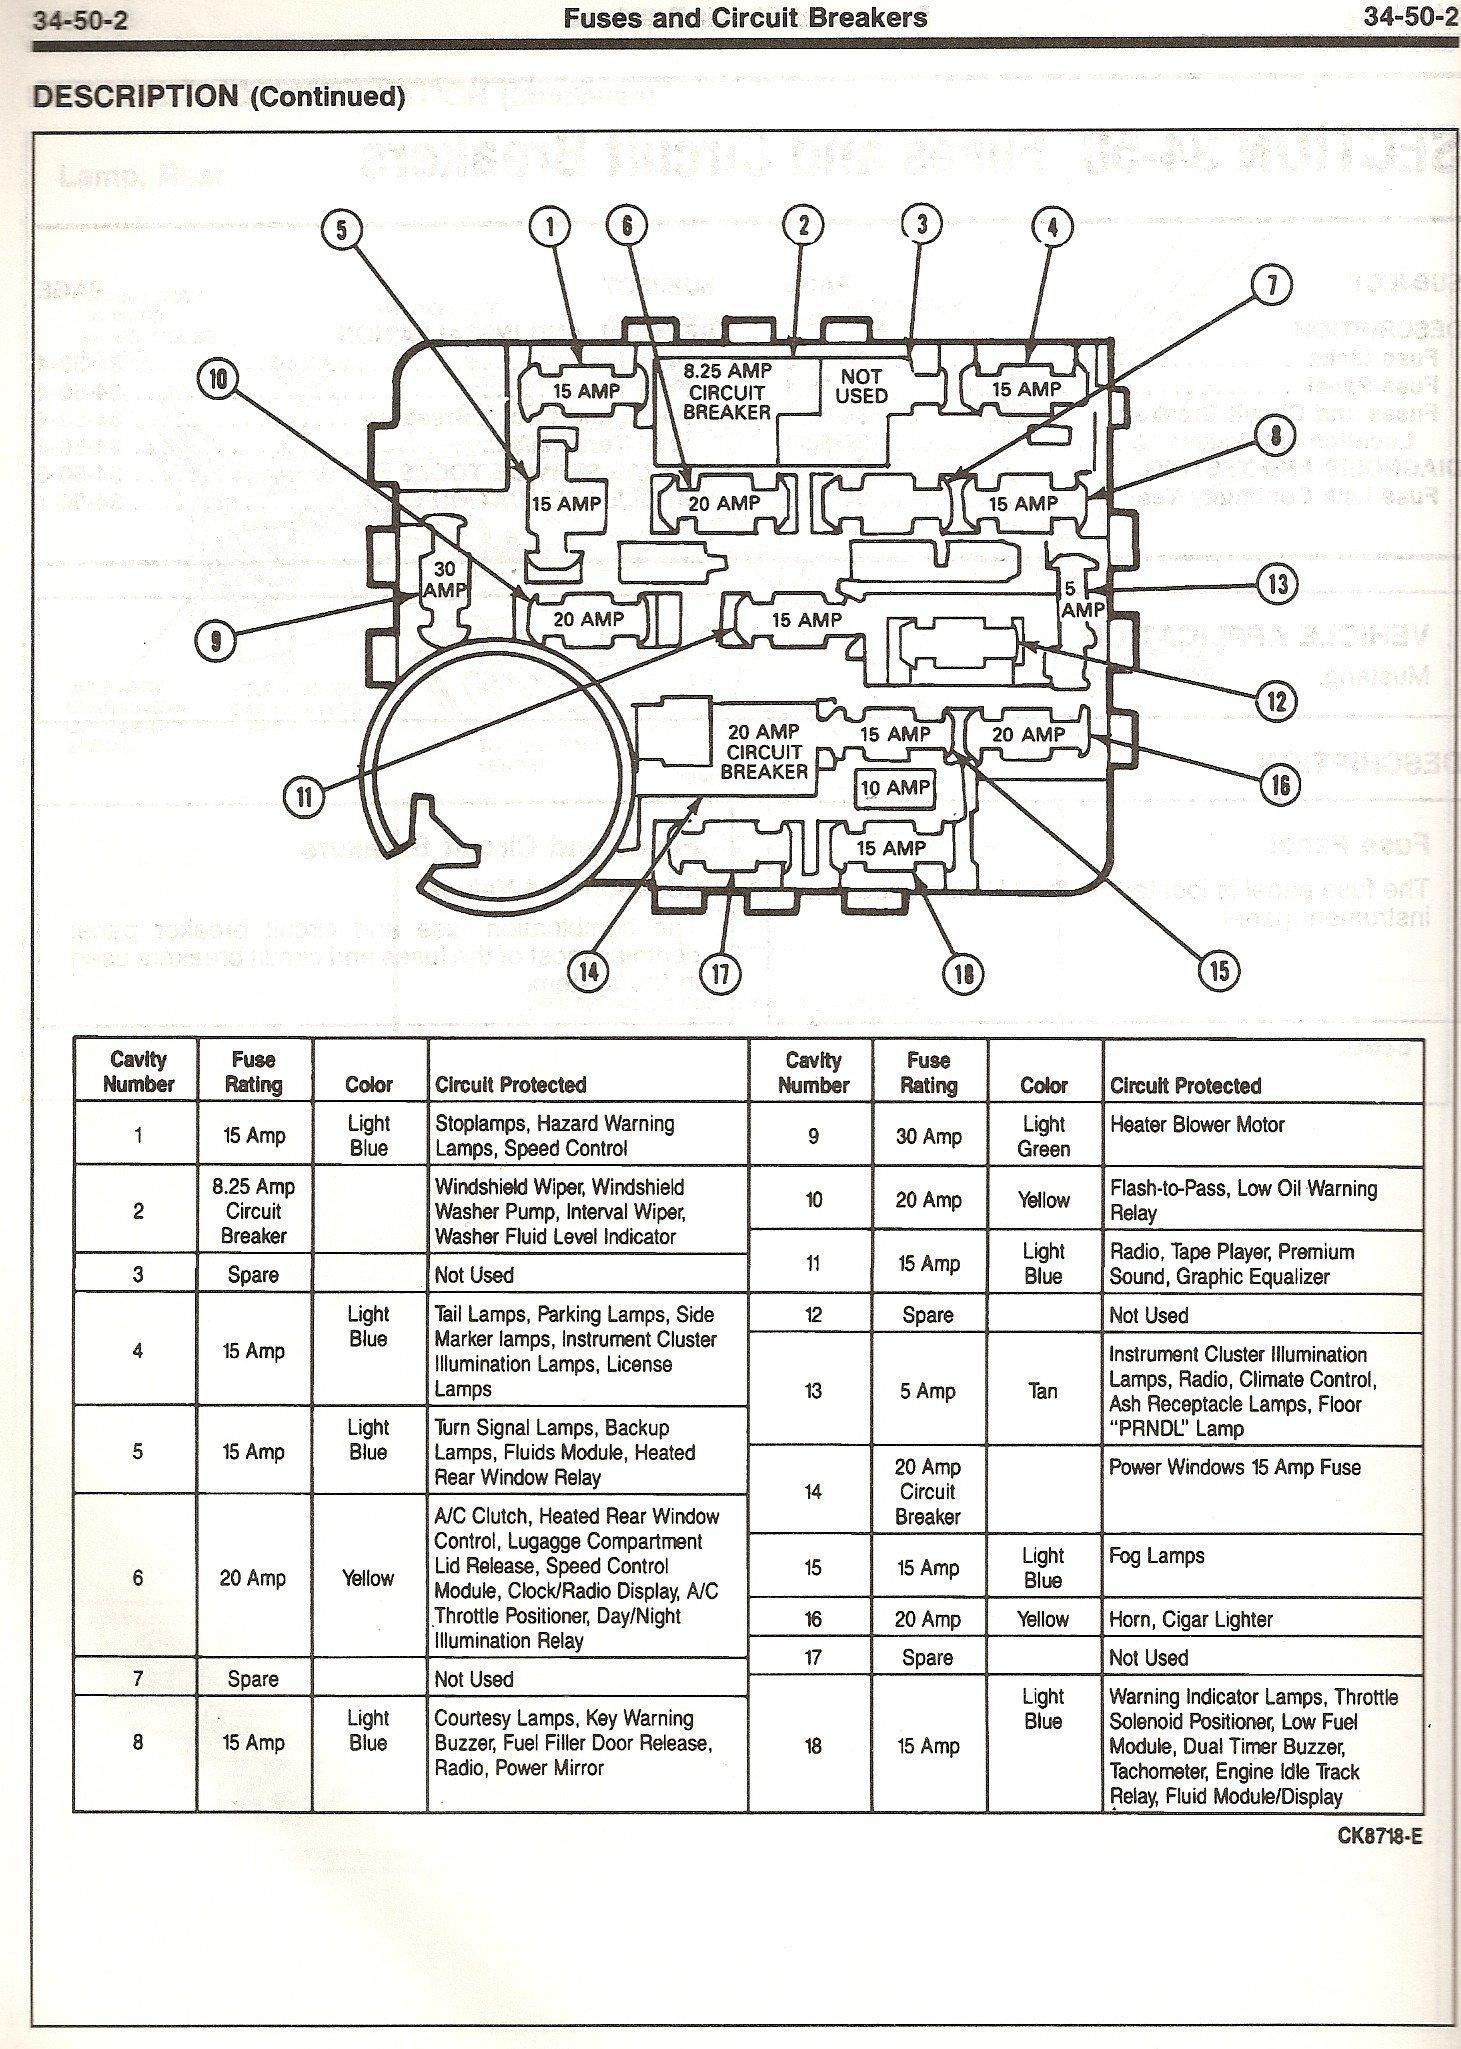 156261d1337885506 93 lx 5 0 no dash lights help scan7 93 lx 5 0 no dash lights help ford mustang forum 89 mustang fuse diagram at soozxer.org